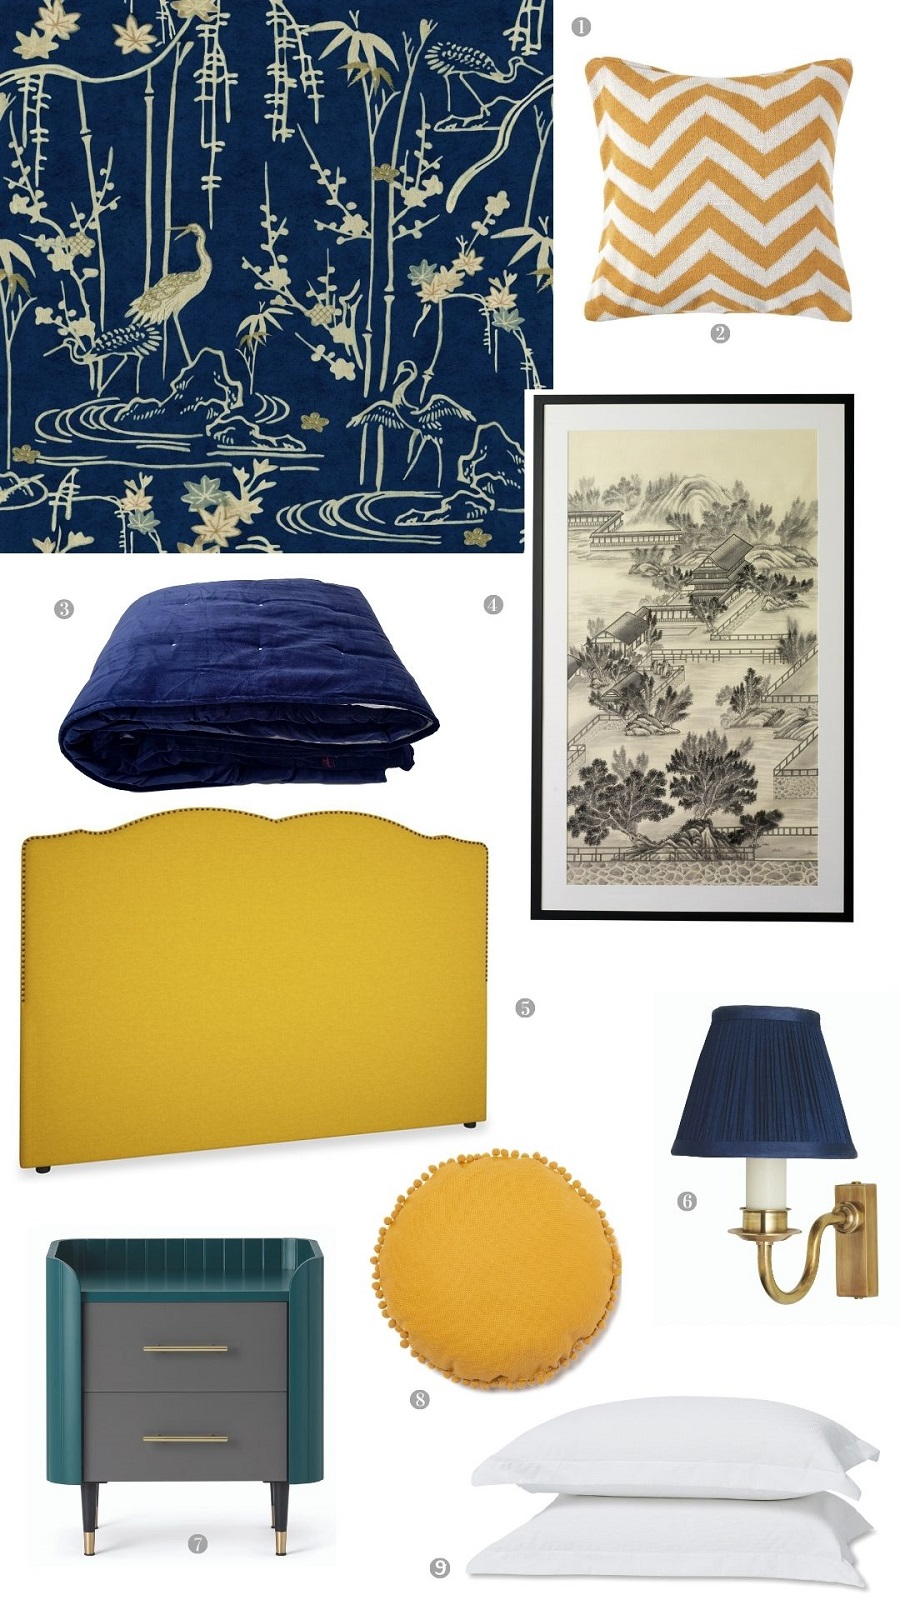 A Traditionally Styled Bedroom and How to Get The Look